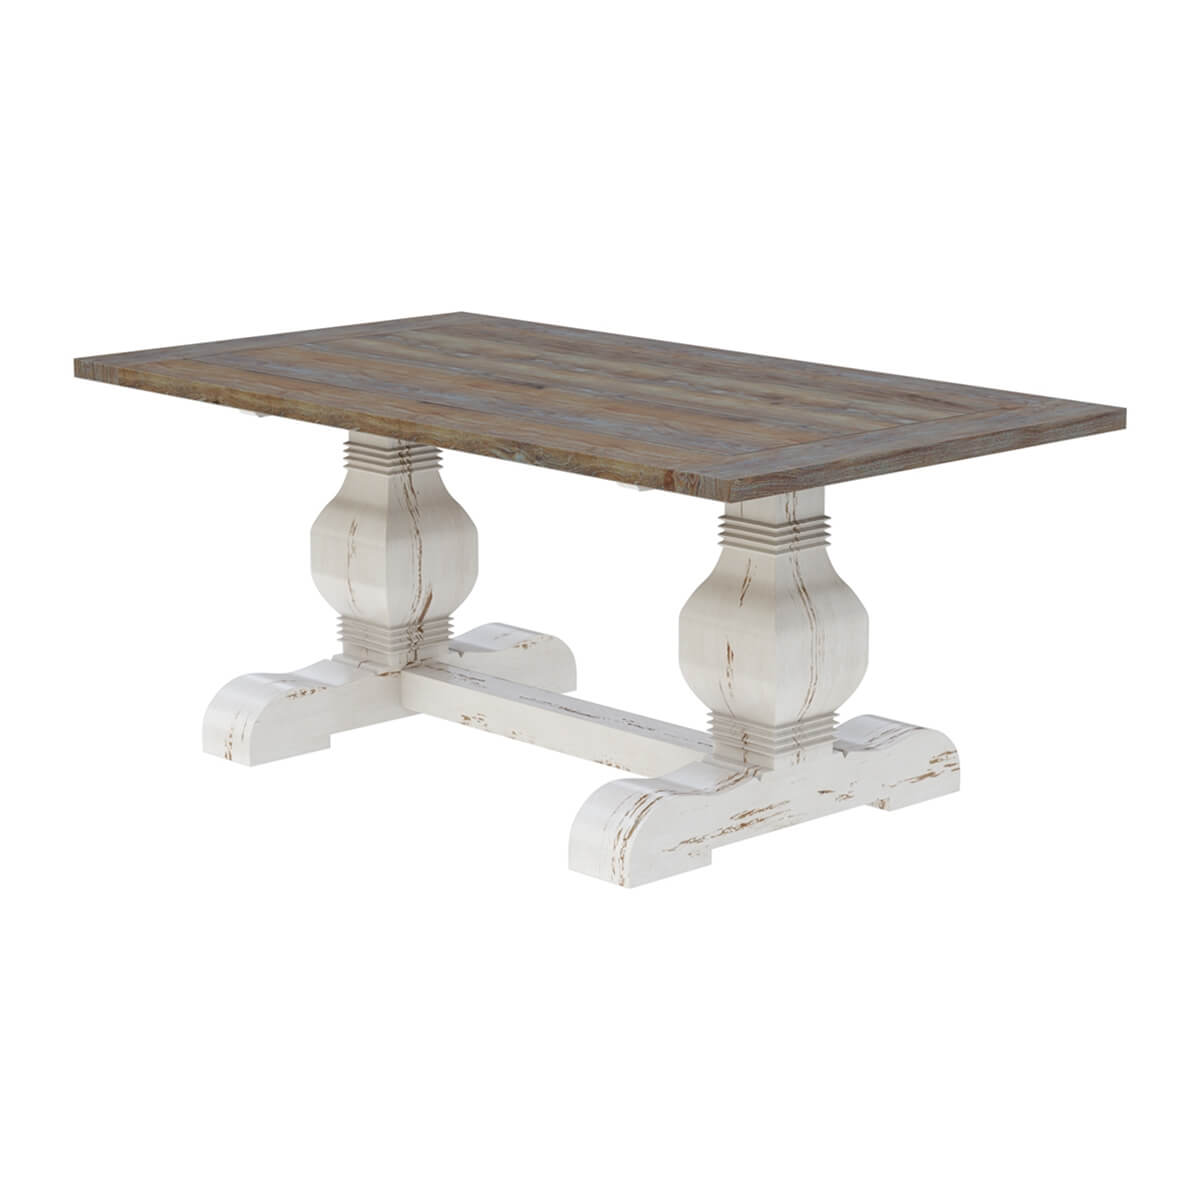 greenville two tone teak wood trestle pedestal dining table. Black Bedroom Furniture Sets. Home Design Ideas